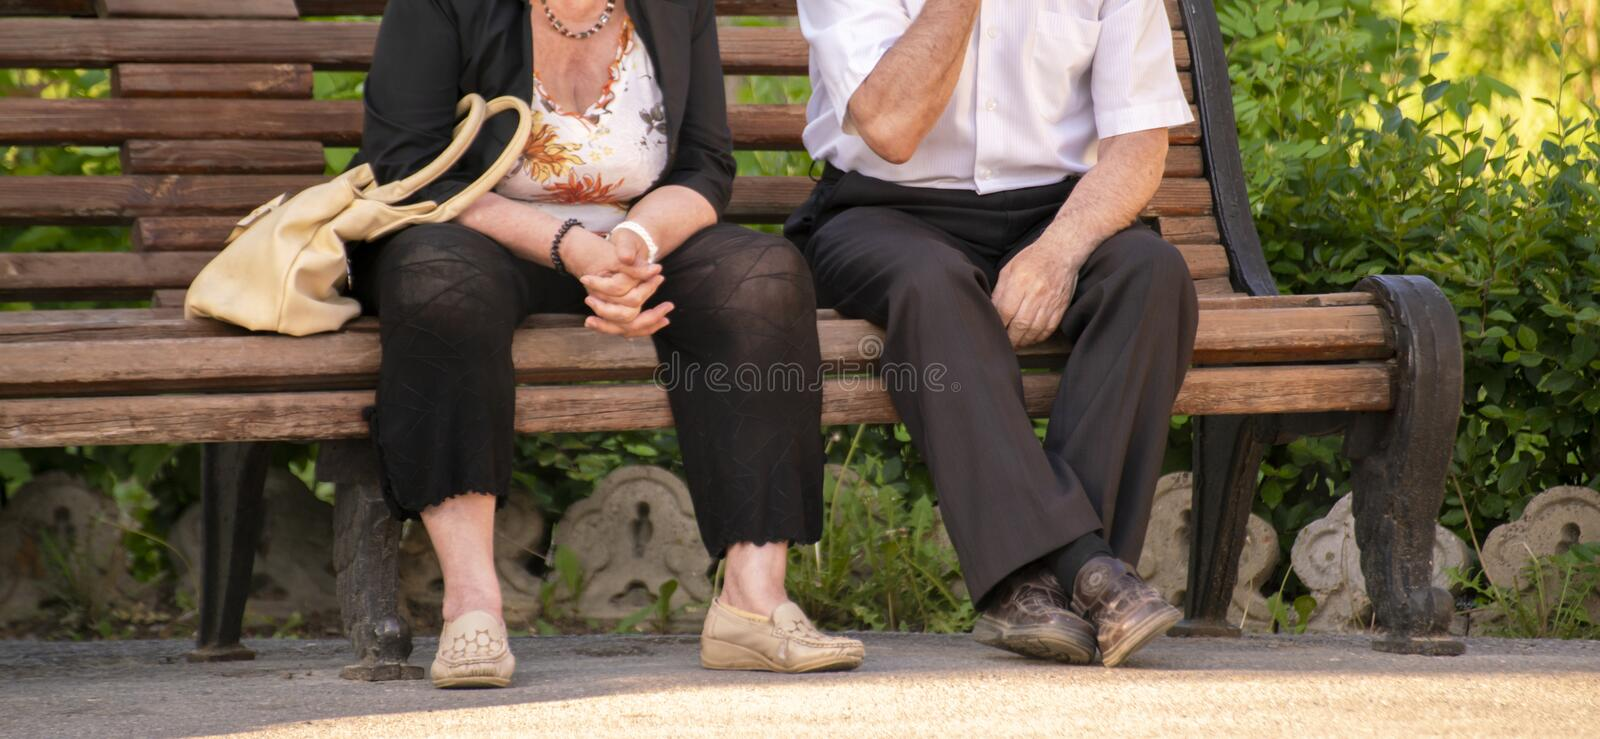 Unidentified people sit on a wooden bench in the green park, chatting in a public places. Unidentified people sit on a wooden bench in the green park, chatting royalty free stock photo